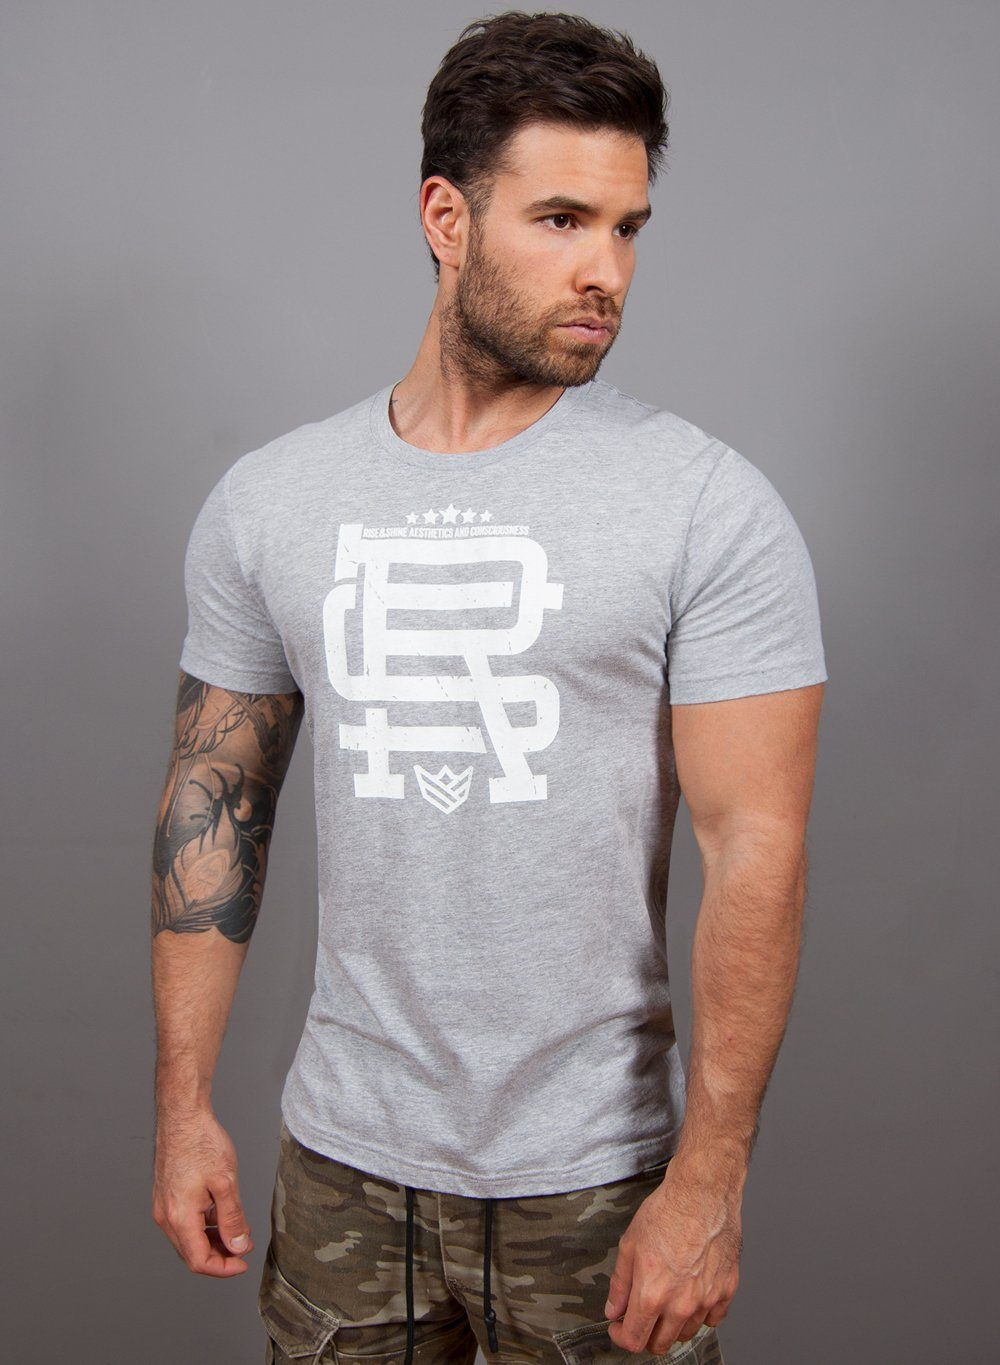 """RS Monograma"" Camiseta - 4 Colores Disponibles Camiseta de Hombre Rise&Shine Mindbody Industries S Gris"